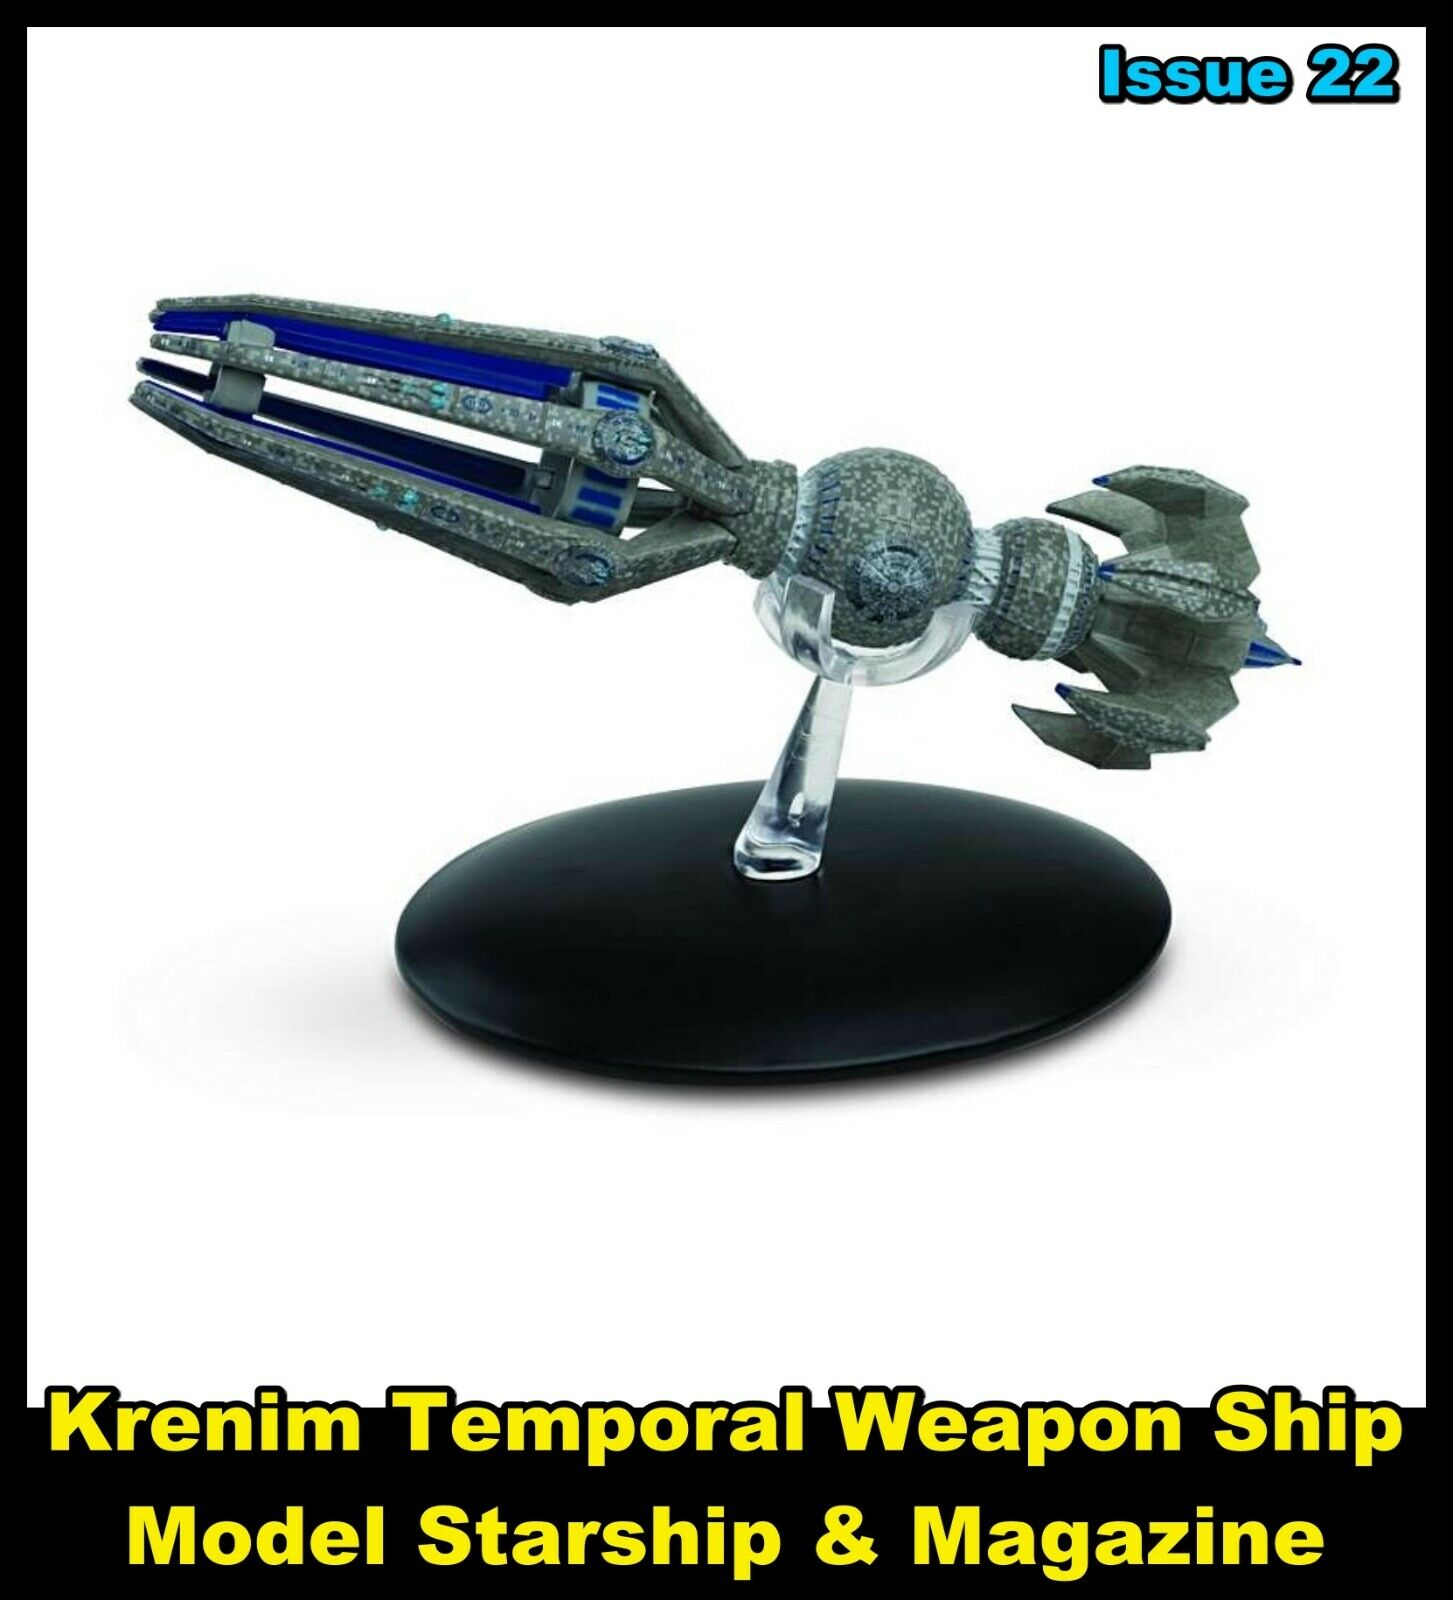 Issue 22: Krenim Temporal Weapon